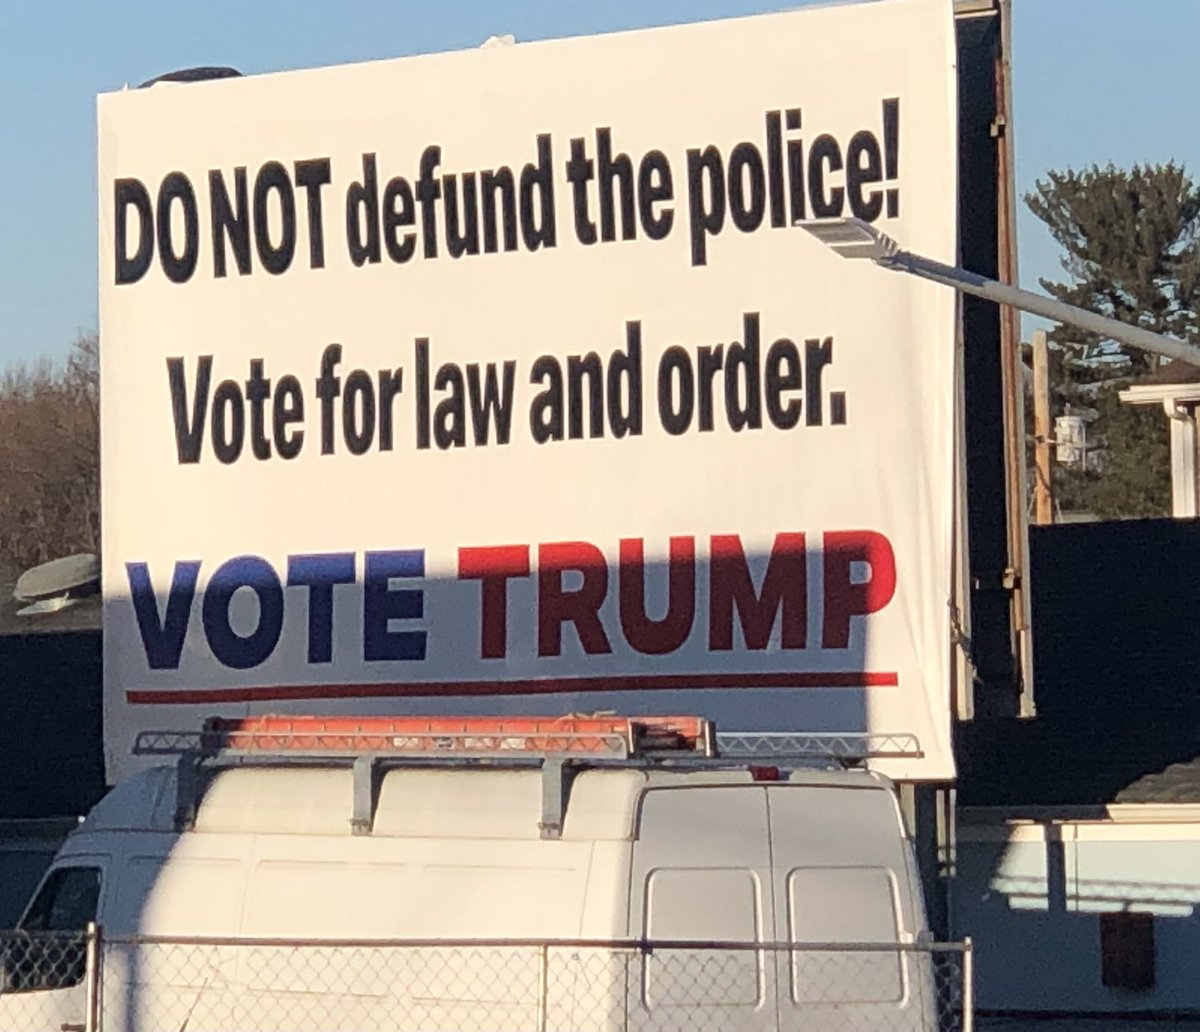 @Out5p0ken @chipfranklin This billboard is One block from a PD.  Had to do a uie and take this pic.  UNBELIEVABLE!  This is near car dealerships.  That van was not taking it down.. PD promoting #TrumpCoupAttempt  #TrumpLost #DefundThePolice #CoupAttempt #Cult45 #DomesticTerrorism #TrumpTreason #Trump